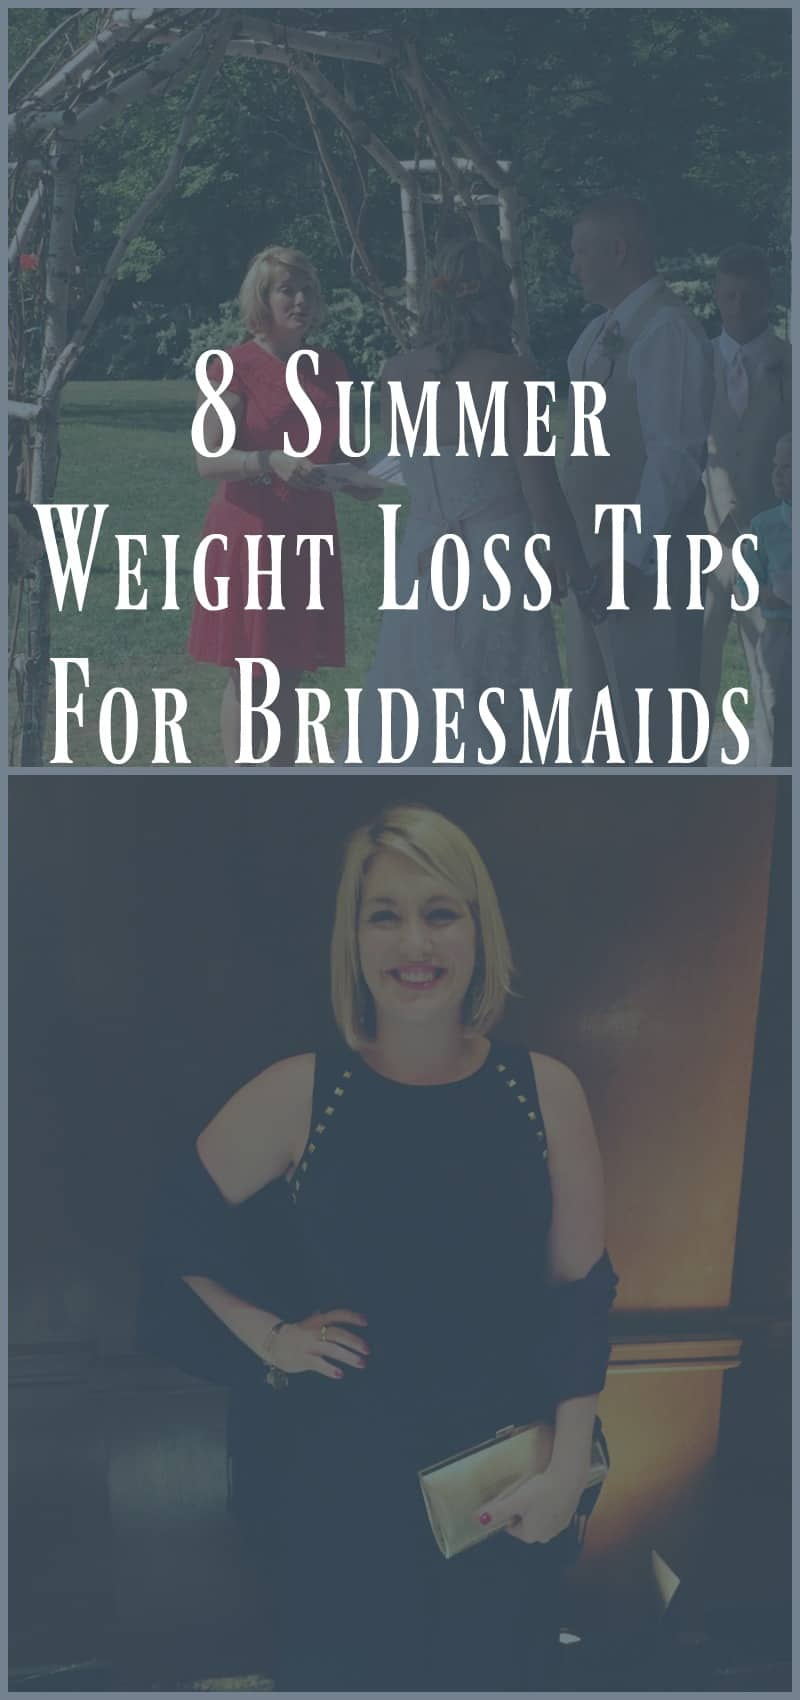 8 Summer Weight Loss Tips For Bridesmai